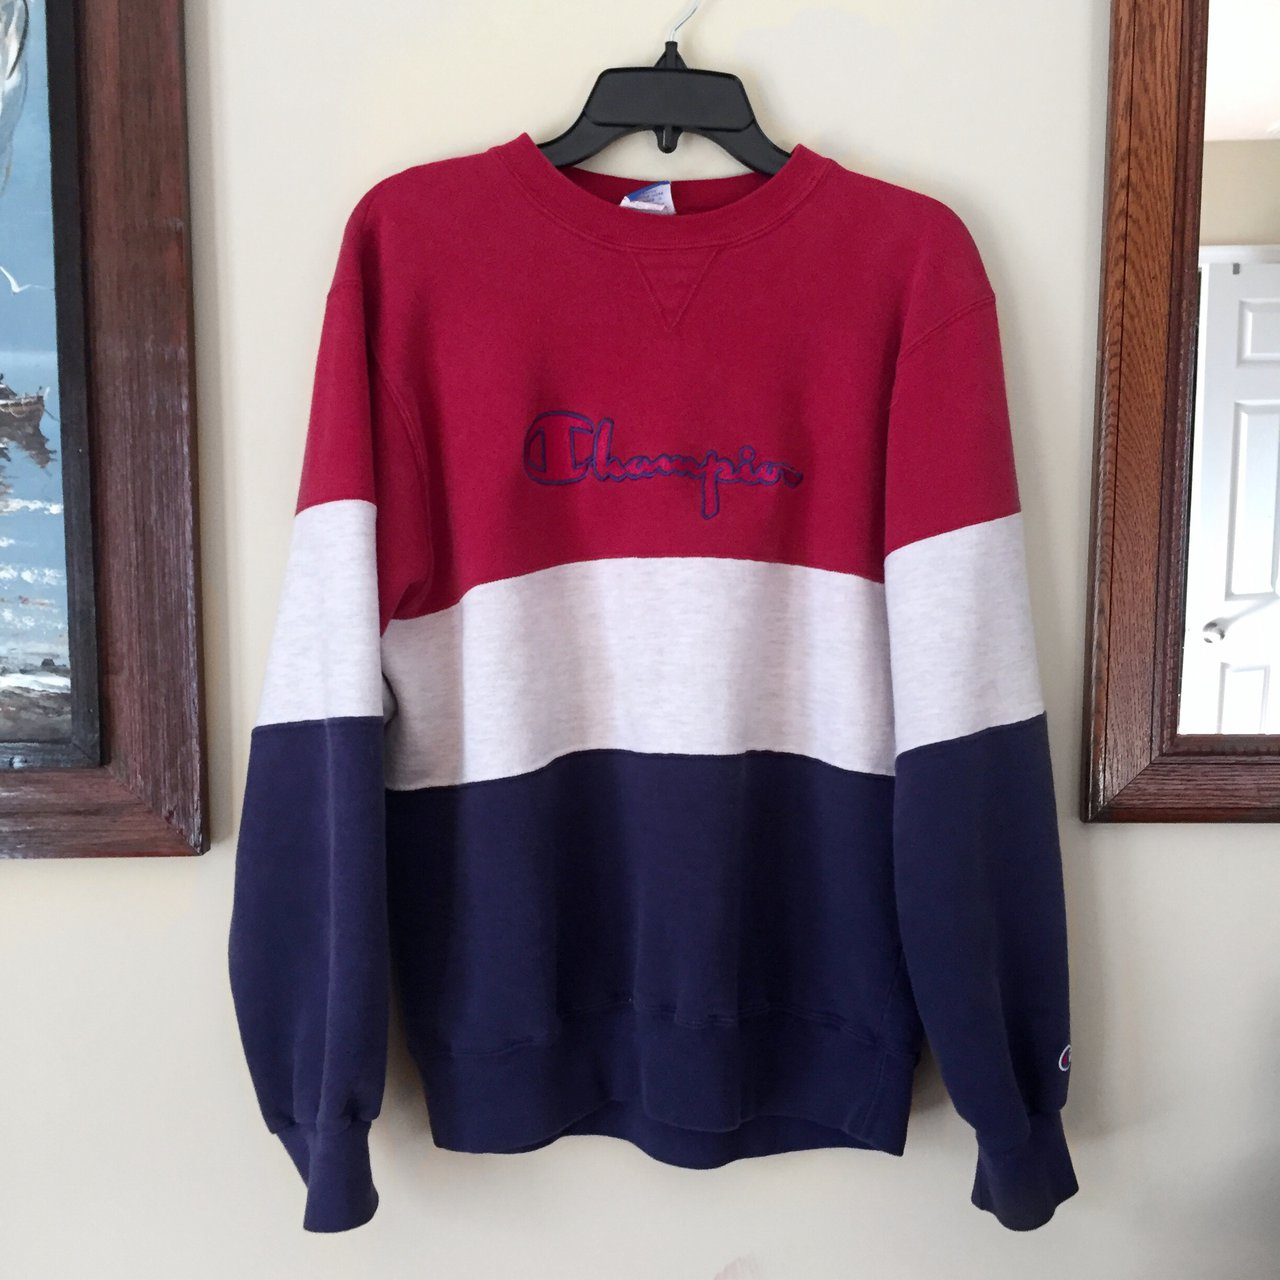 0a2372fcaa8 red white and blue striped Champion sweatshirt! in great fit - Depop